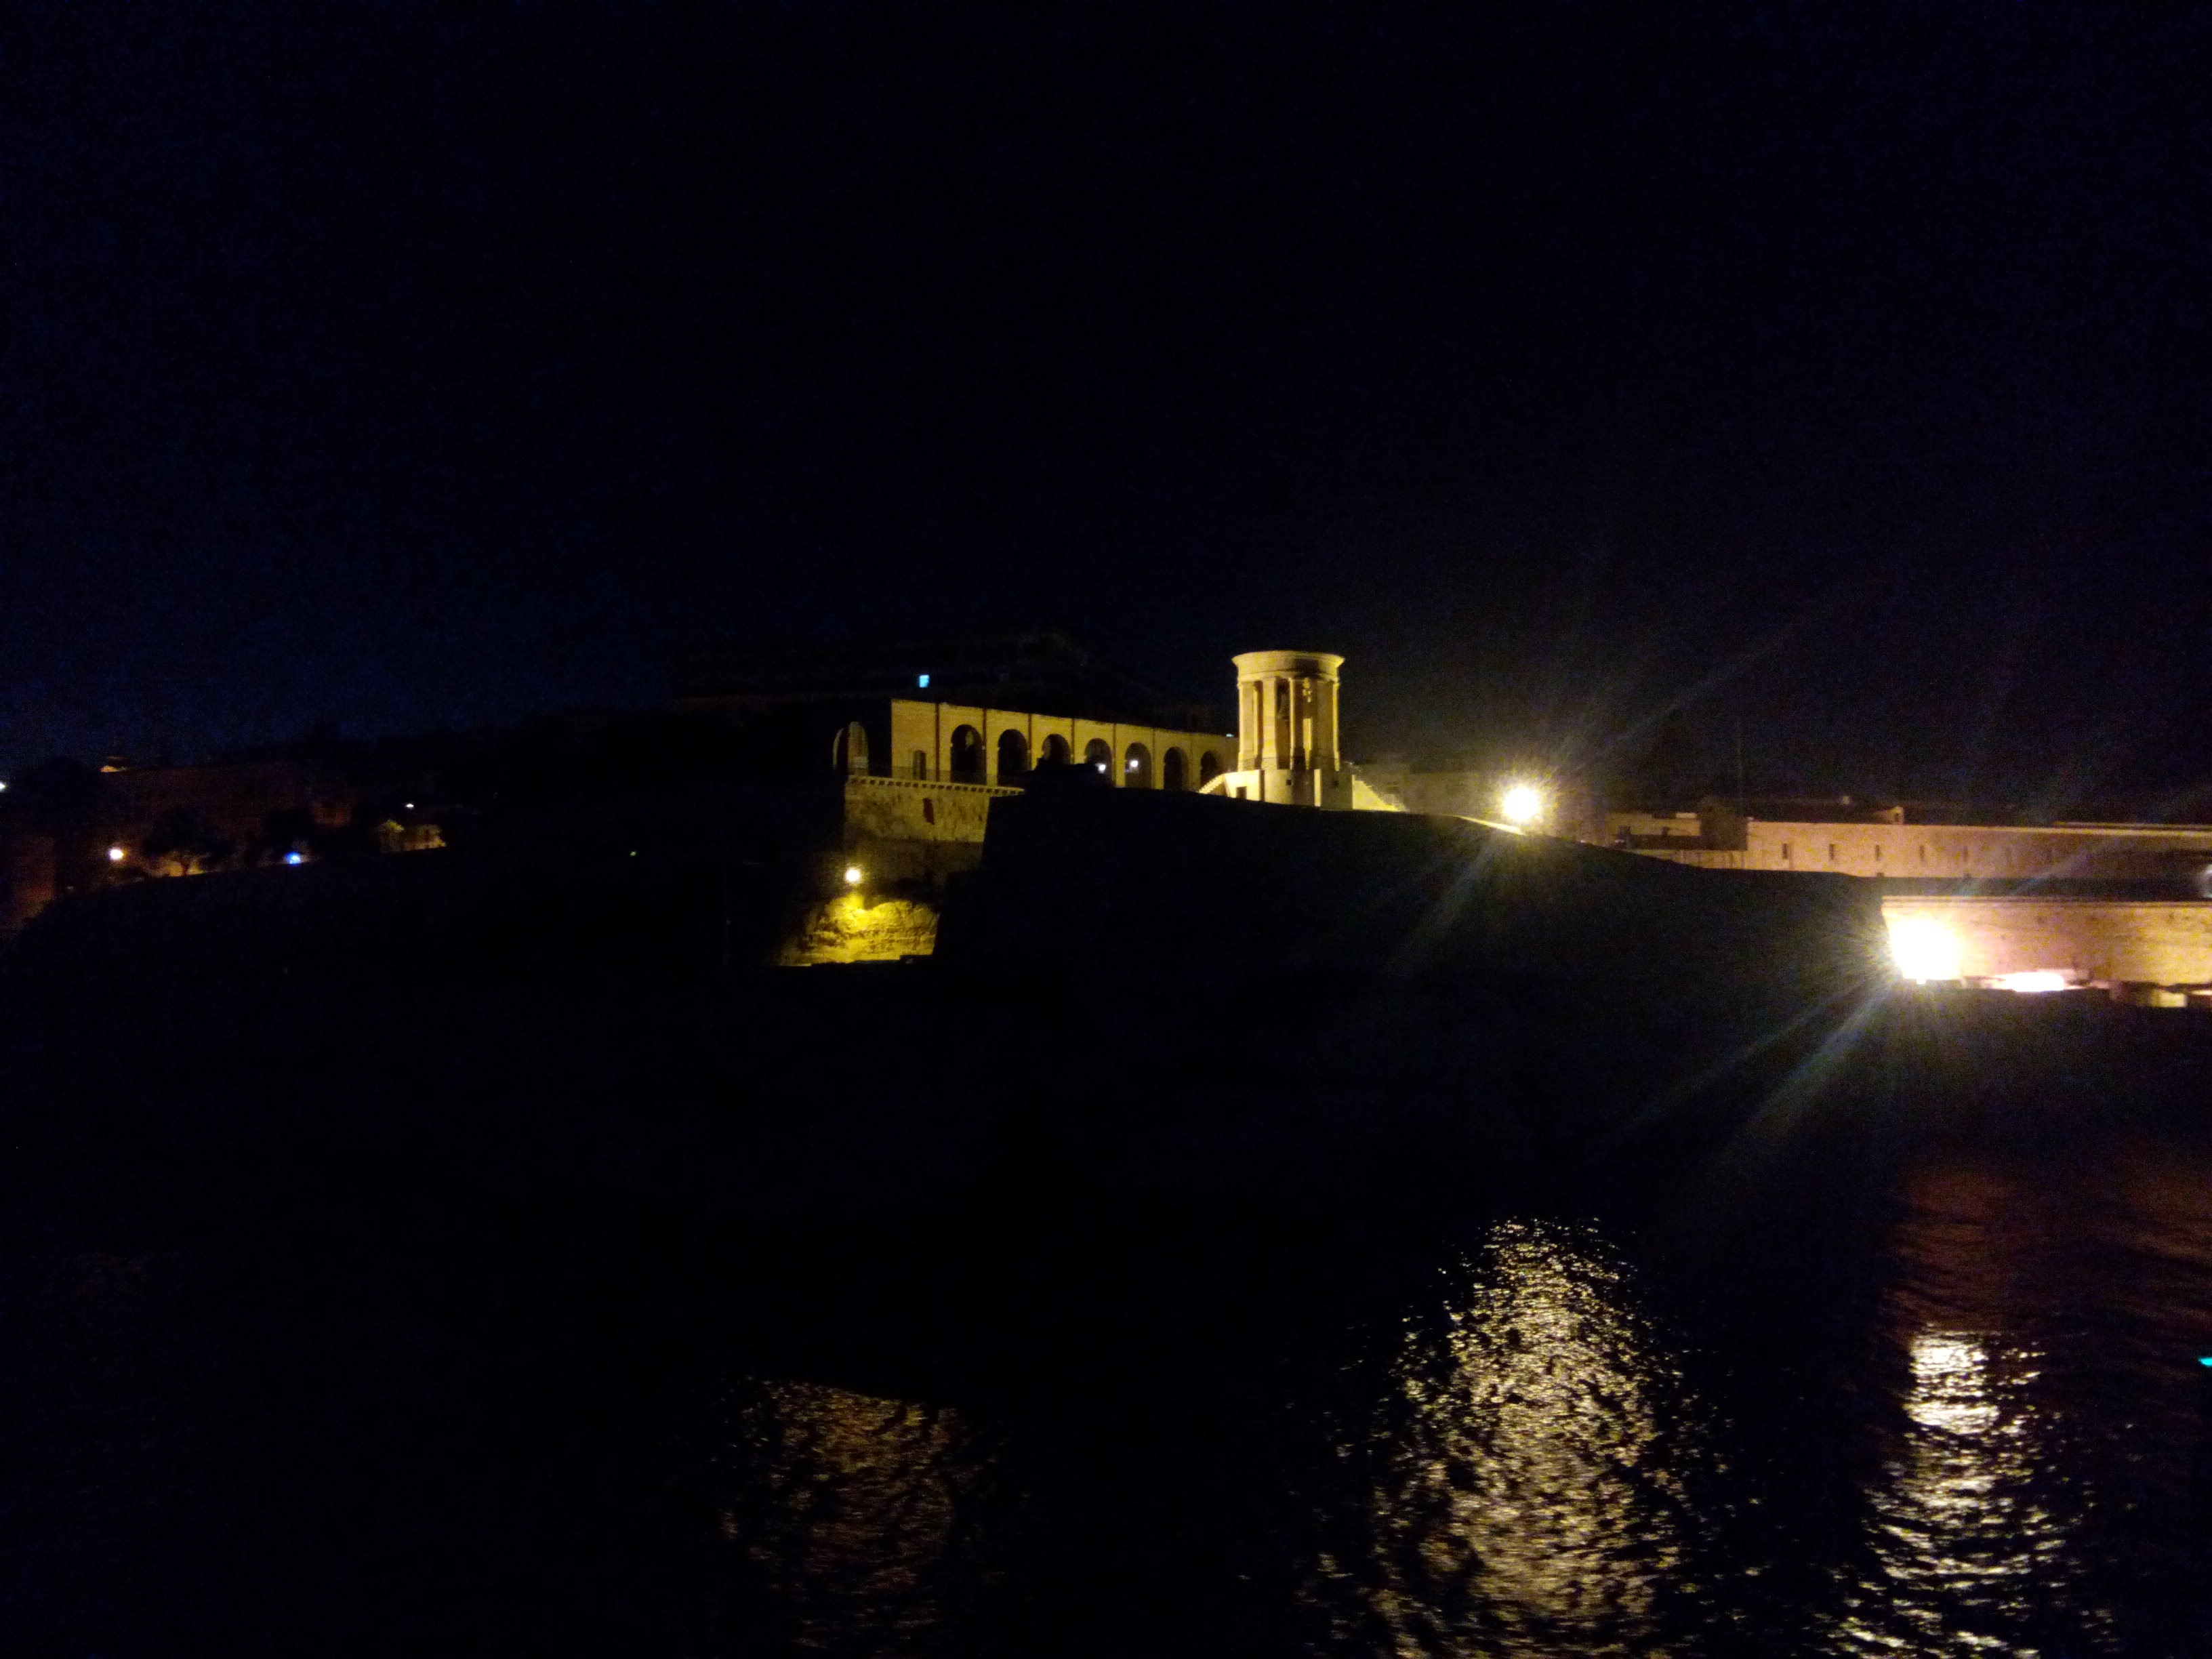 Black sky and water, with an orange-lit fort in the center